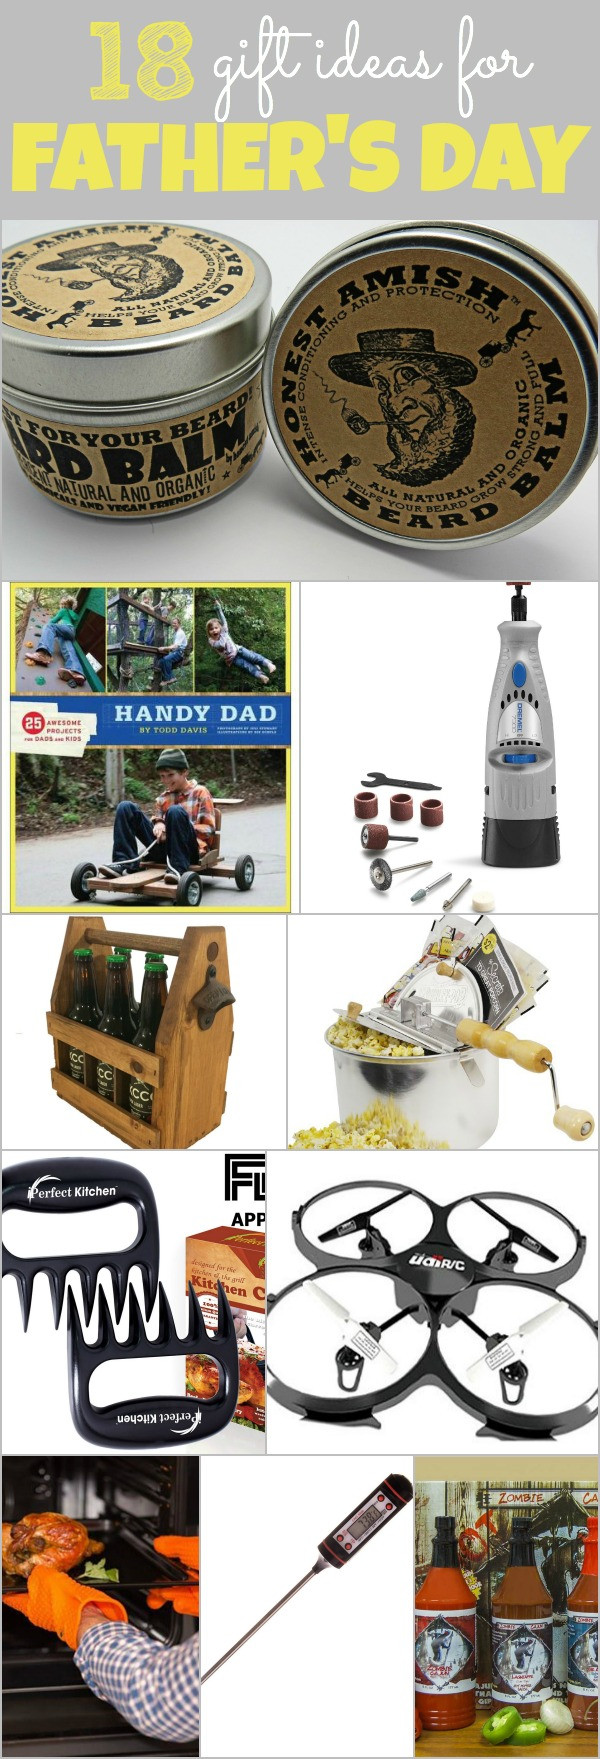 Gift Ideas For Father'S Day  Father s Day Gift Ideas for Your Husband Home Stories A to Z